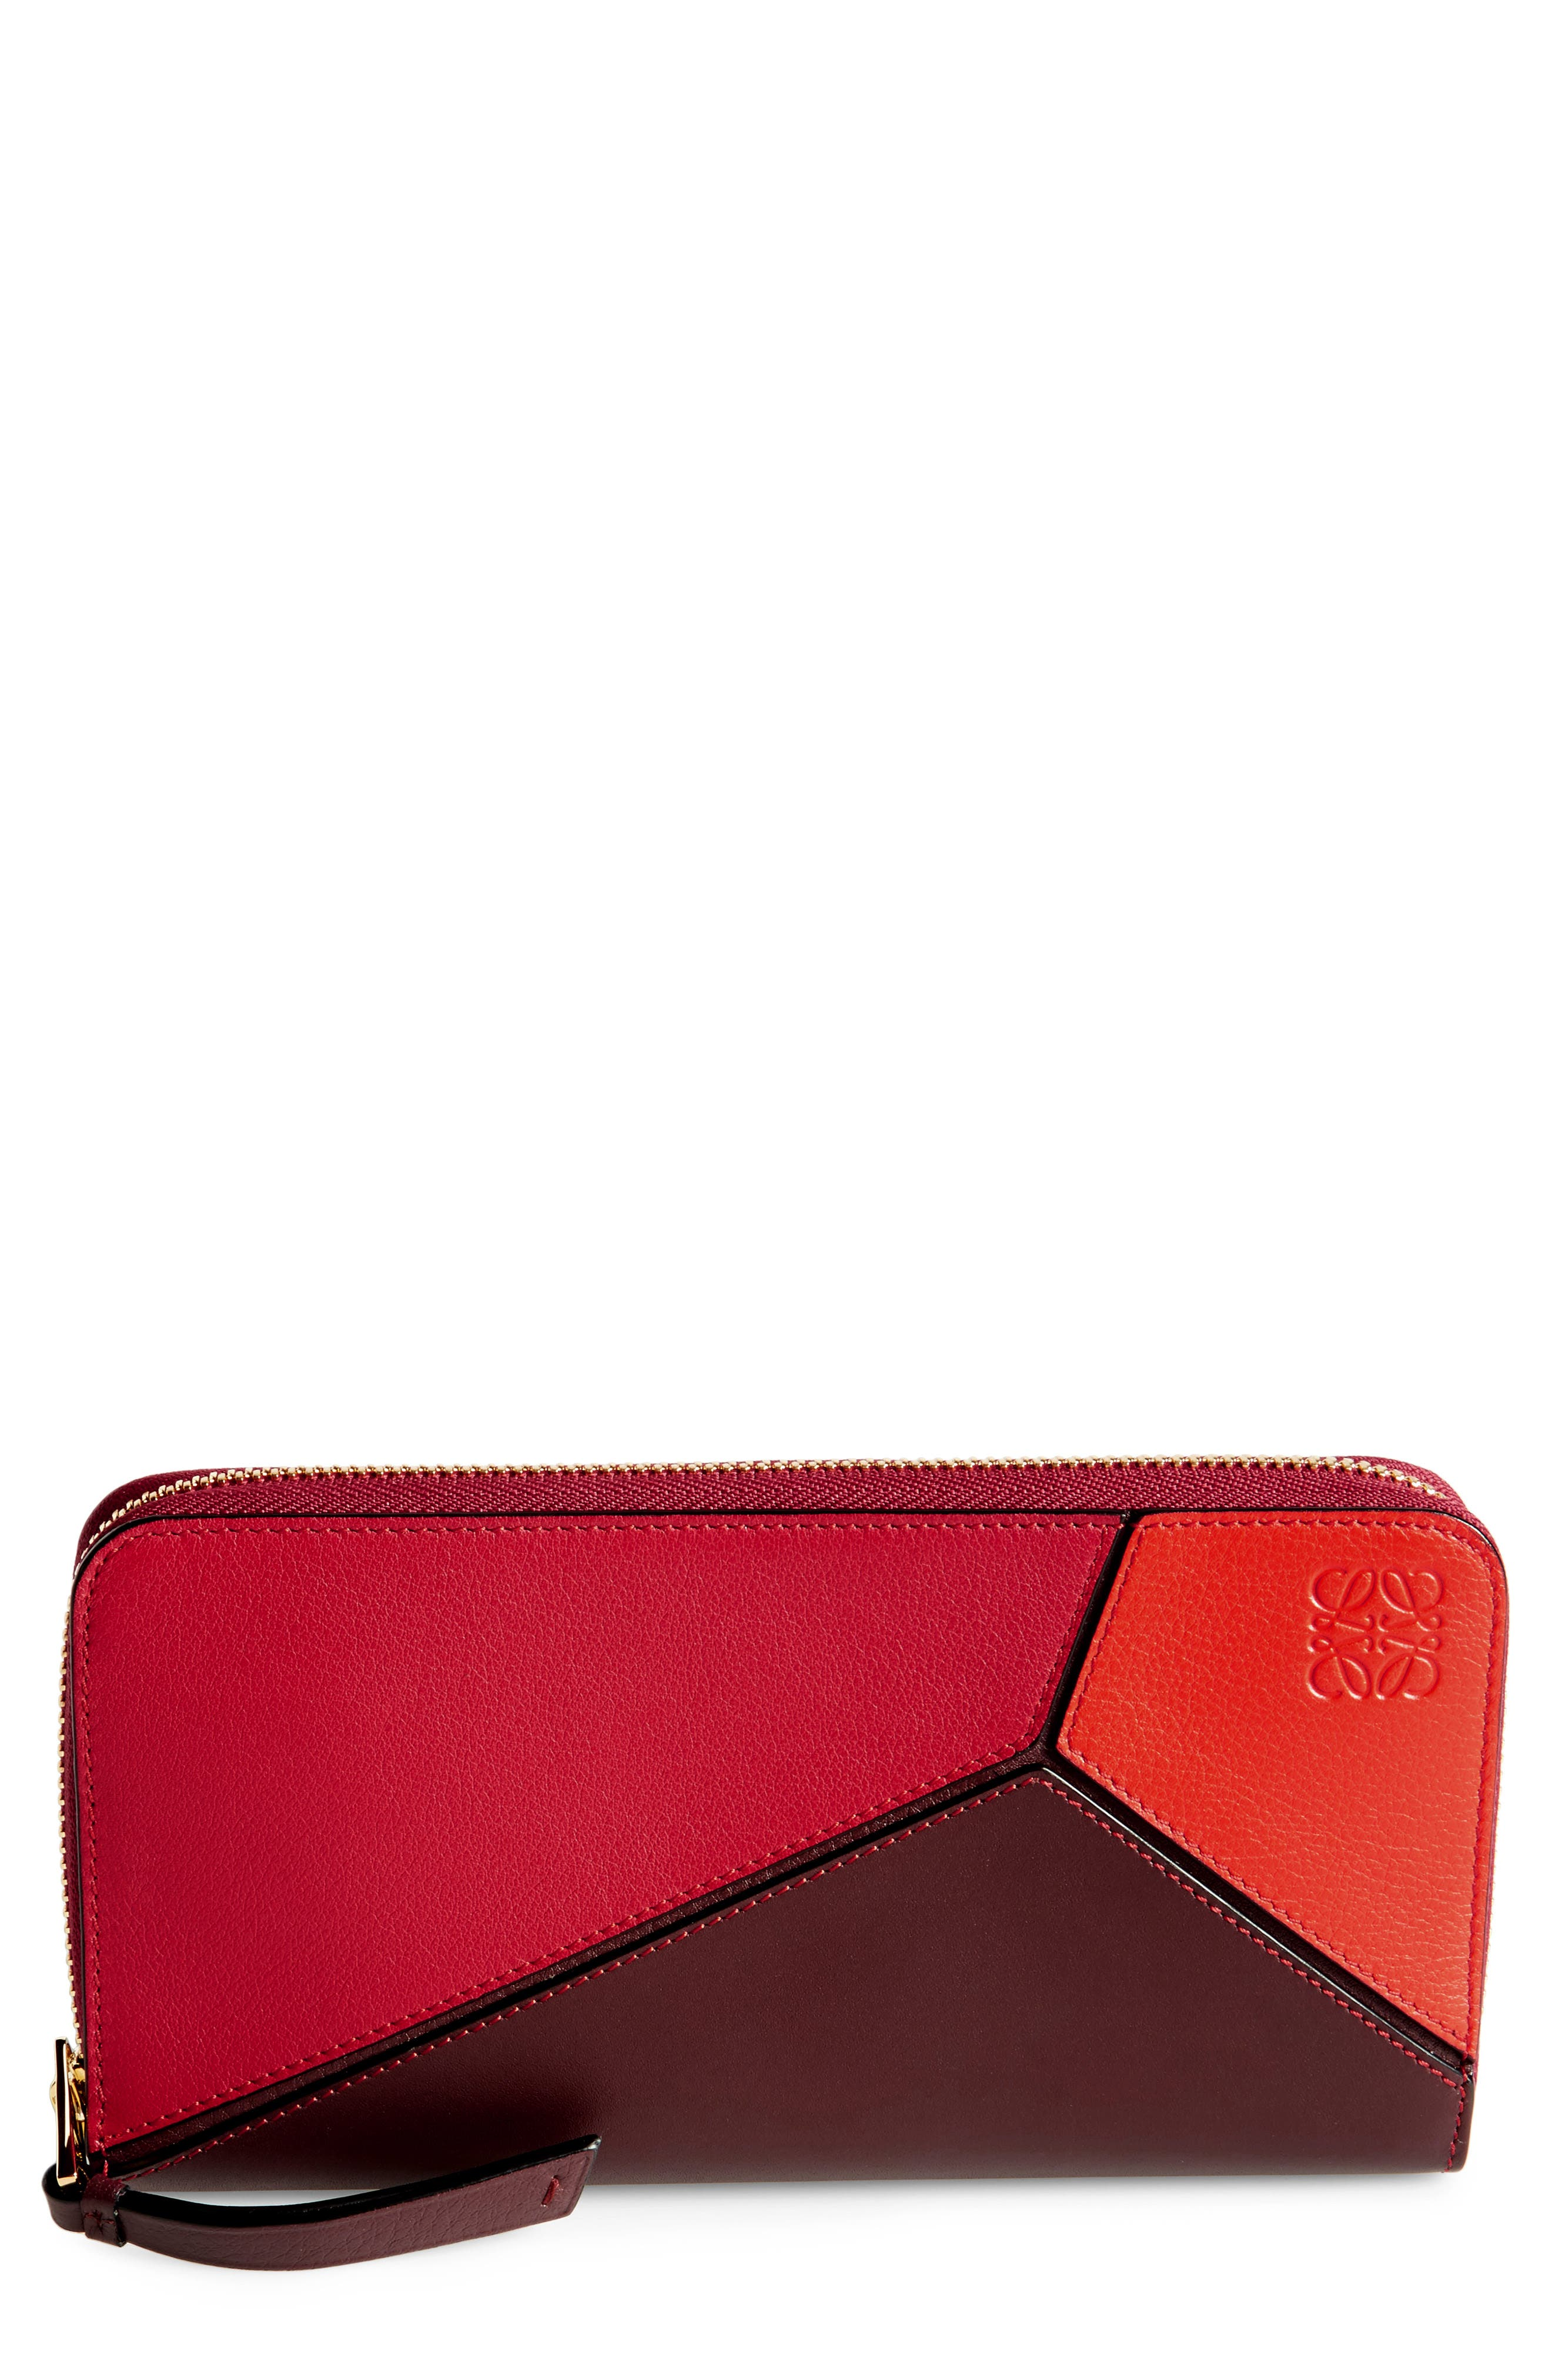 Loewe Puzzle Leather Zip Around Wallet